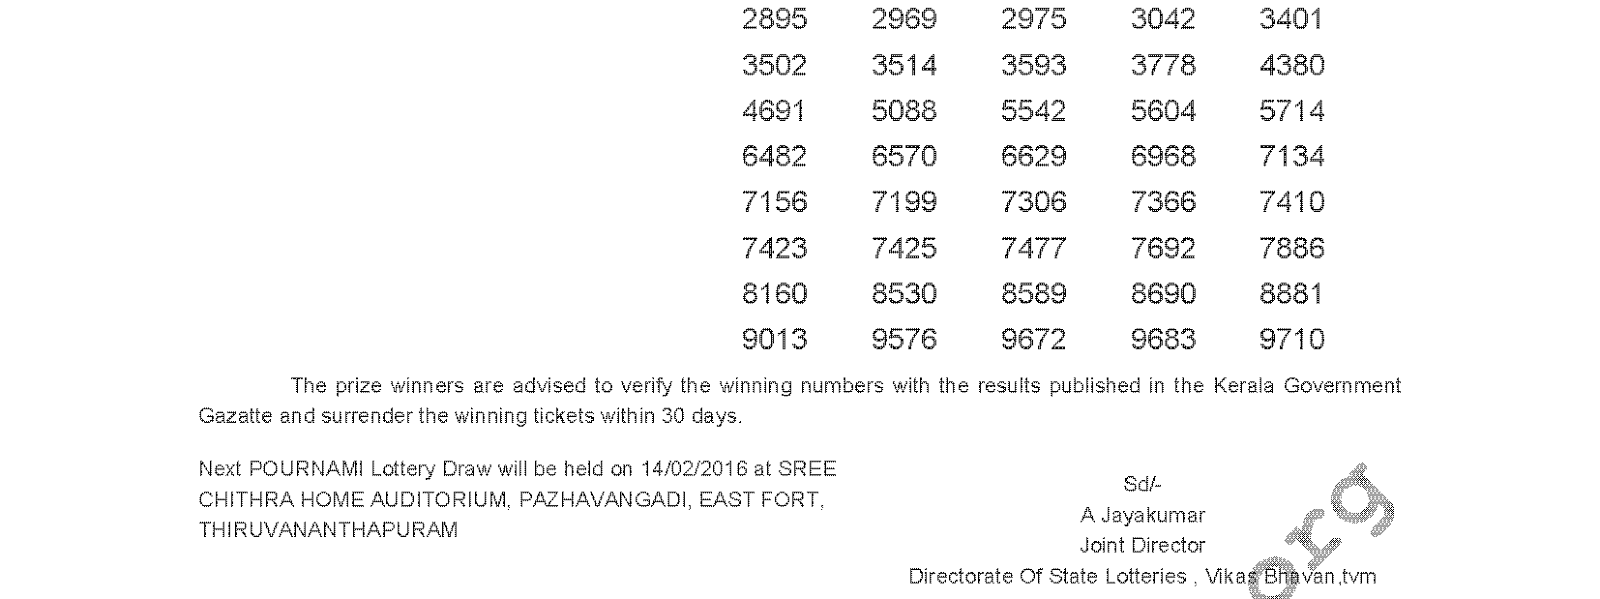 POURNAMI Lottery RN 223 Result 07-02-2016